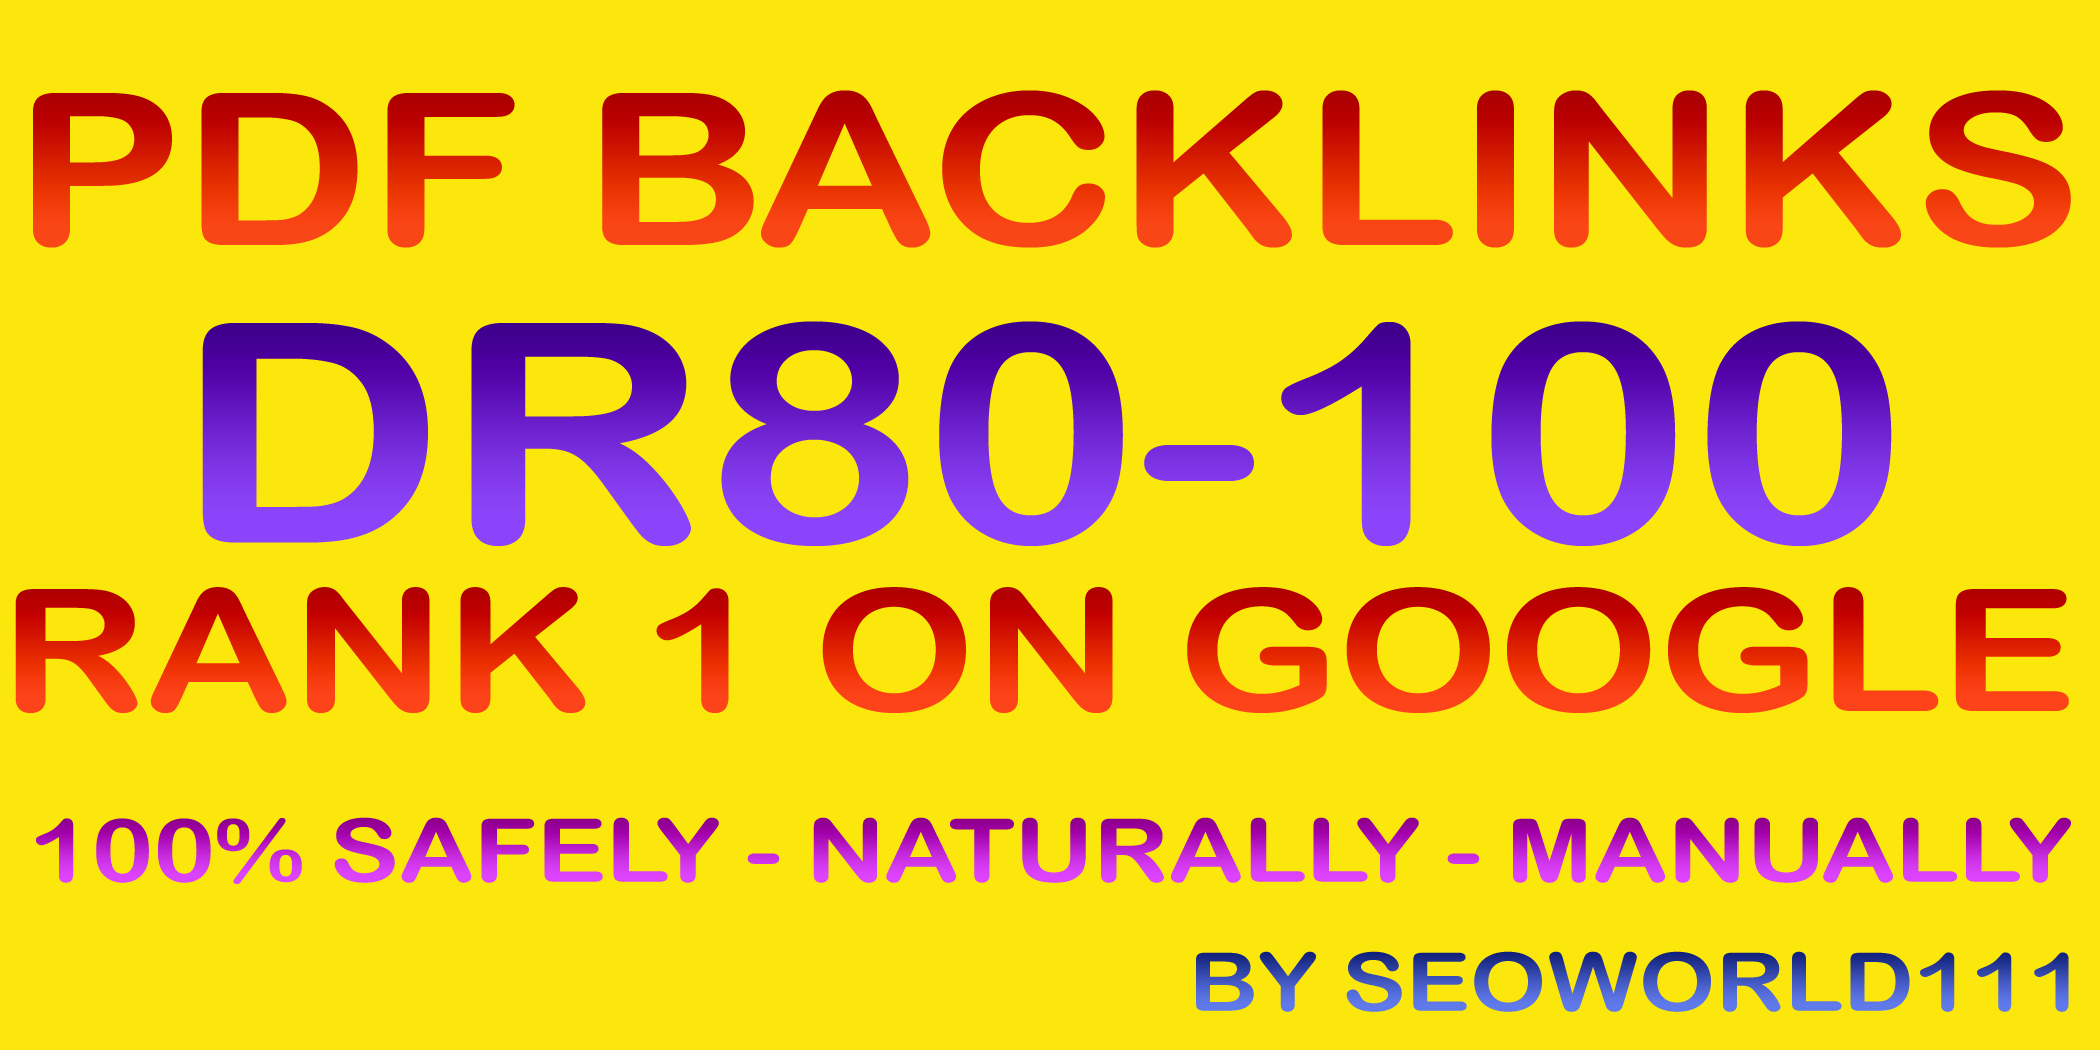 Exclusive 5 PDF Backlinks - DR80-100 - Rank 1 On Google